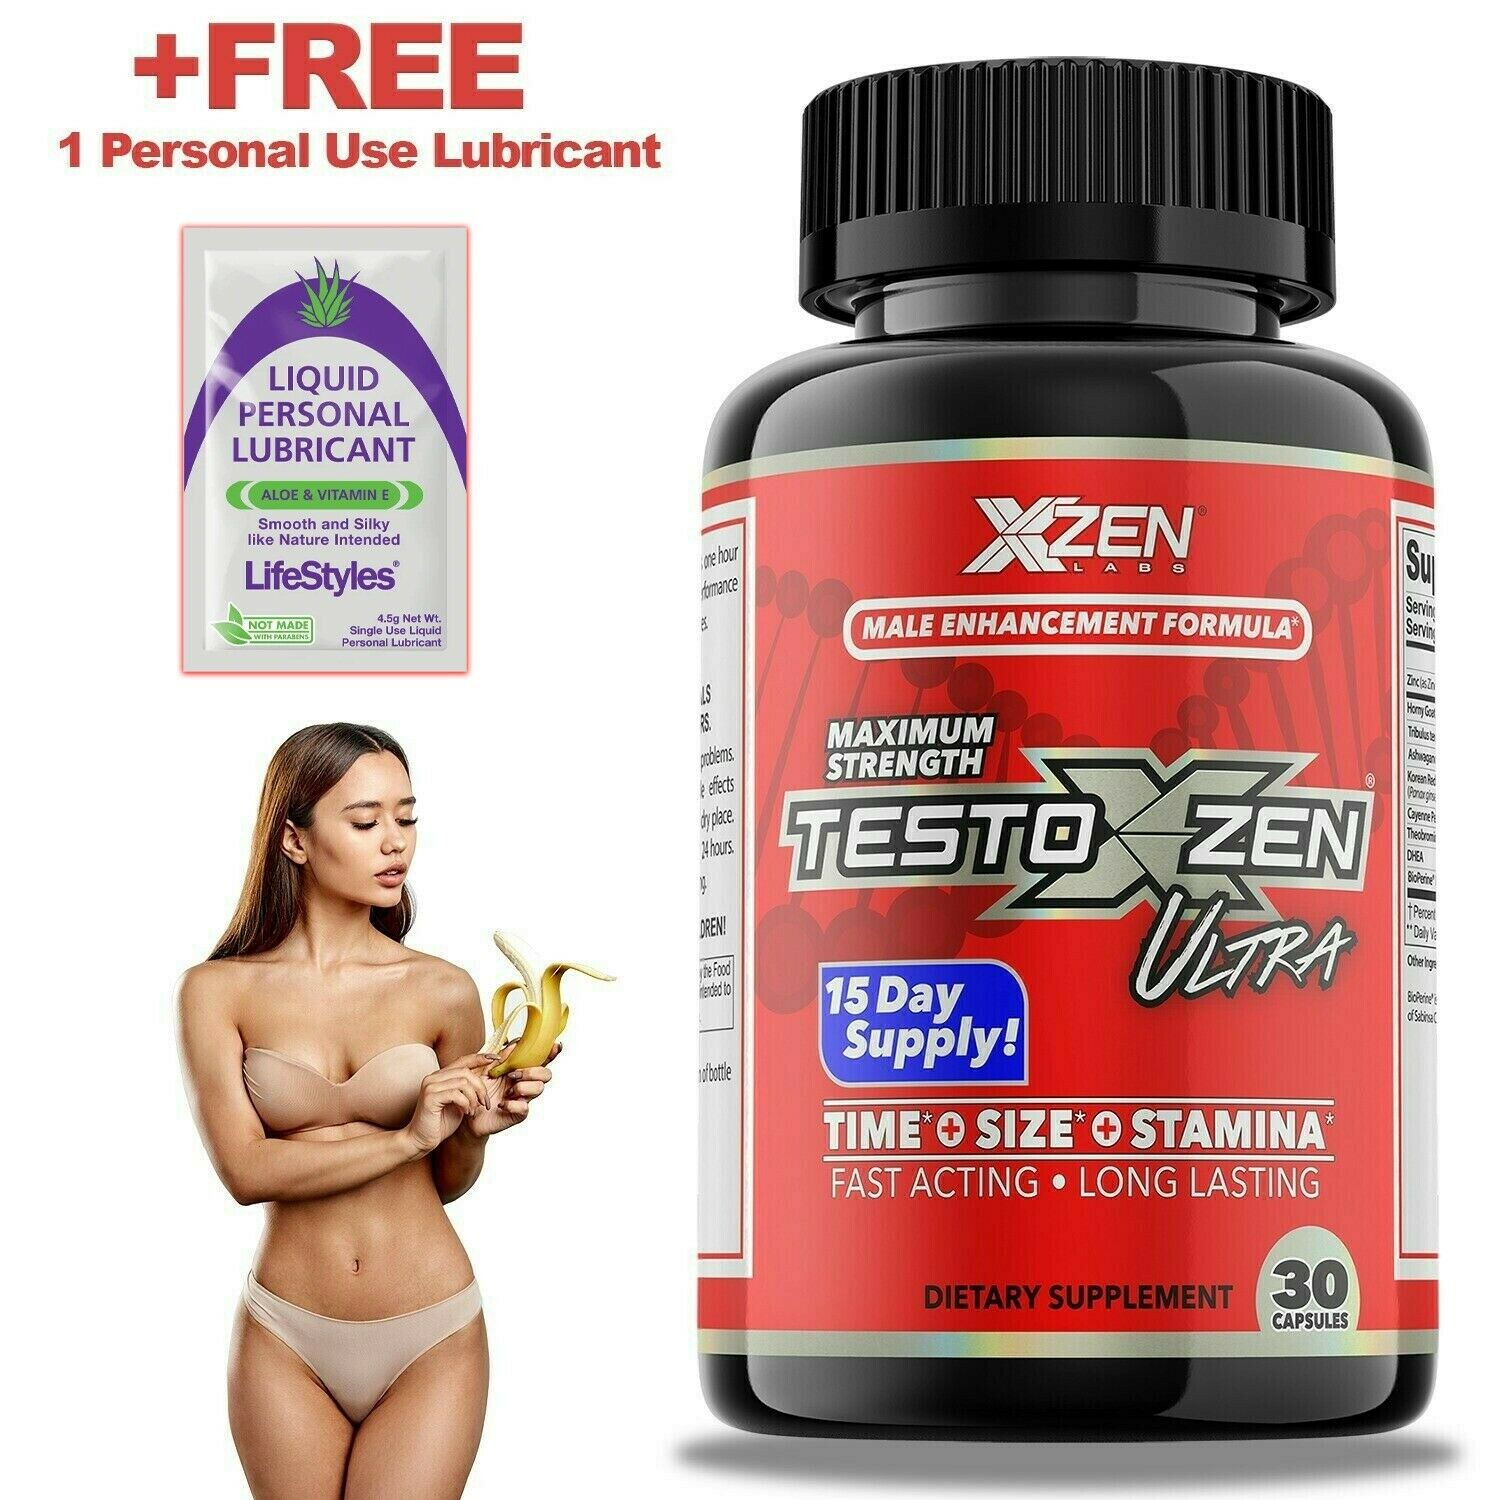 Ying da wang sex booster supplement for men and women